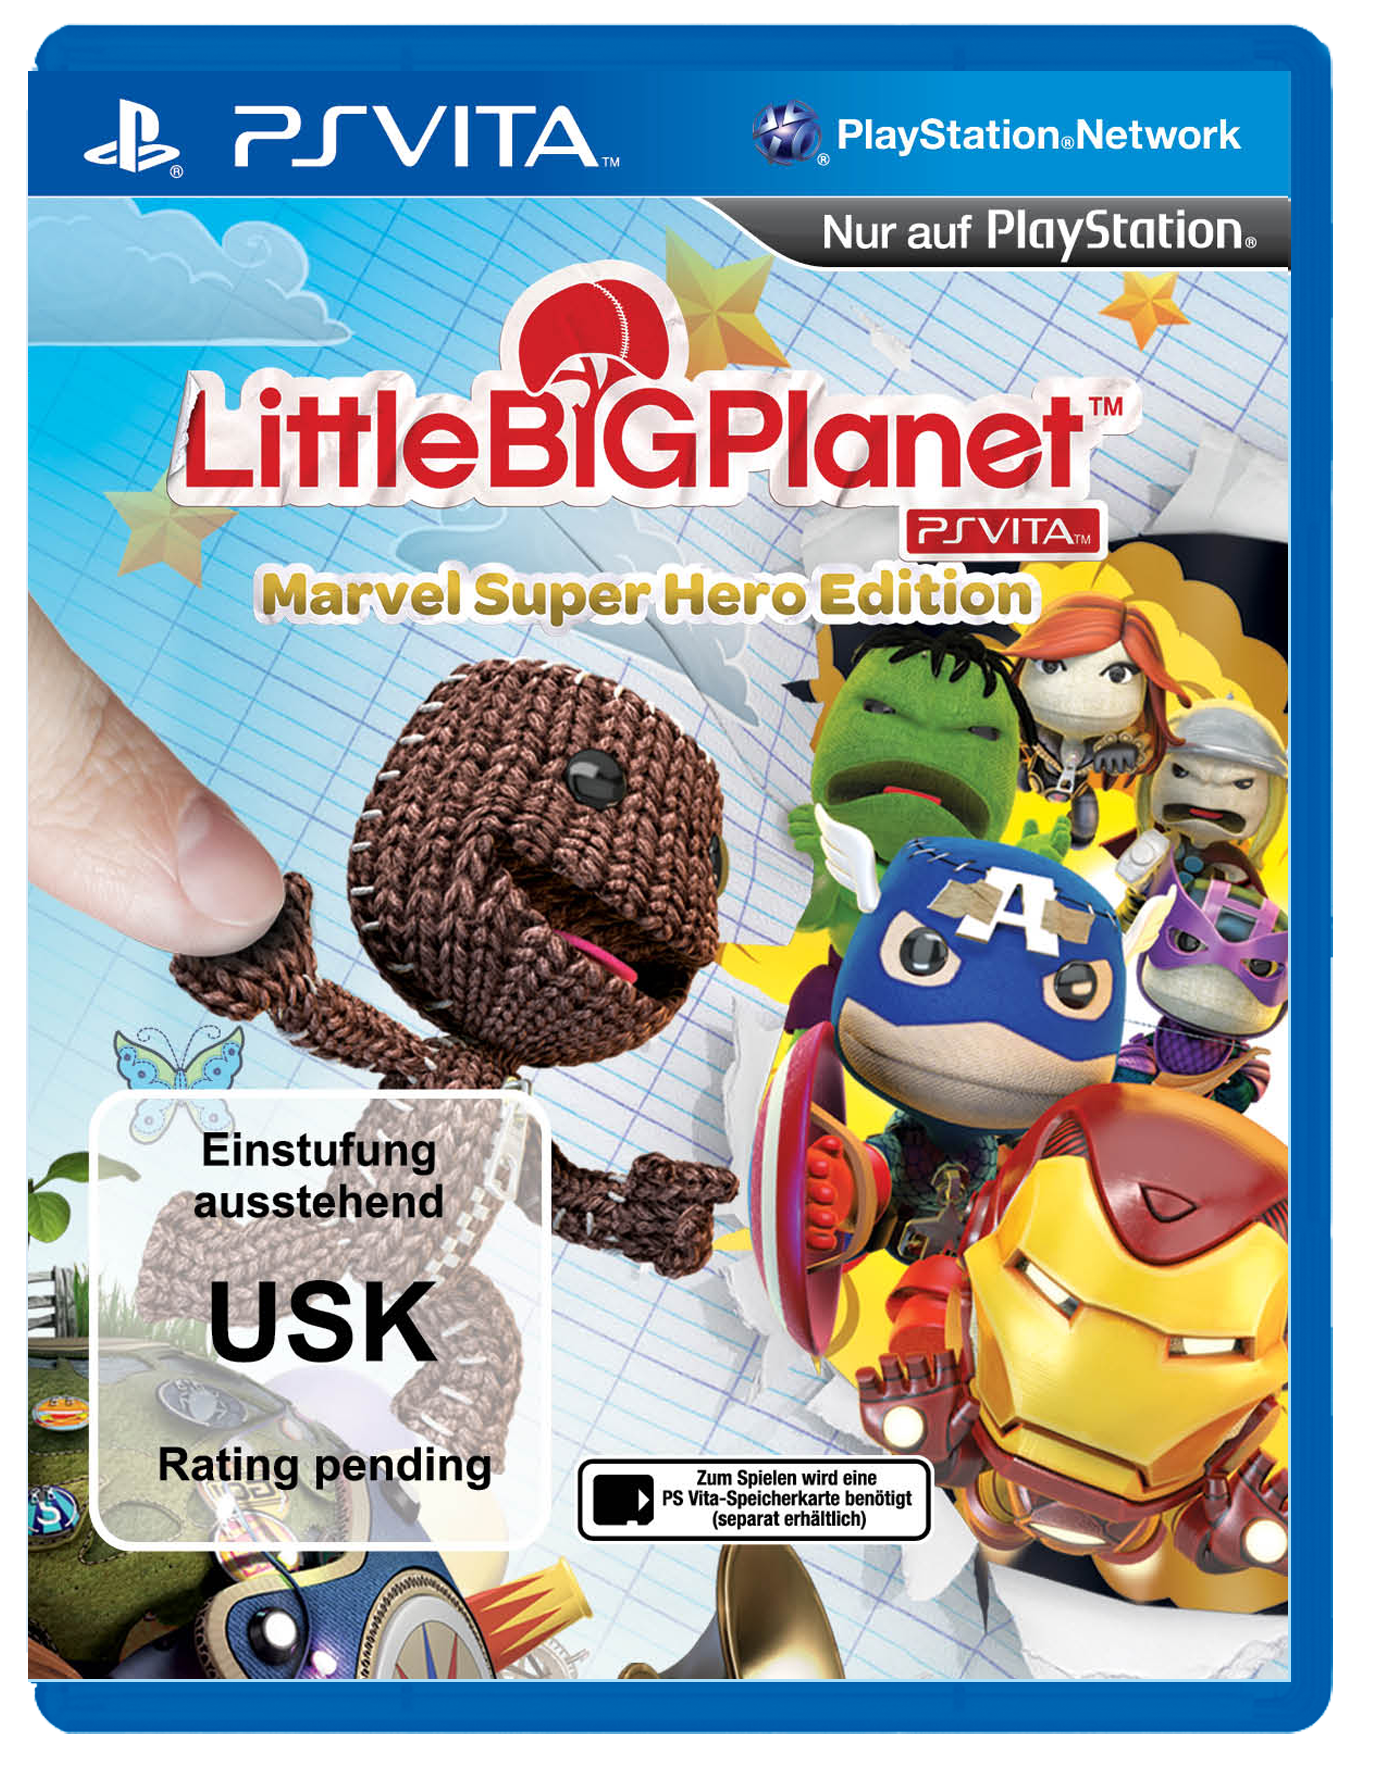 cover_LittleBigPlanet PS Vita Marvel Super Hero Edition